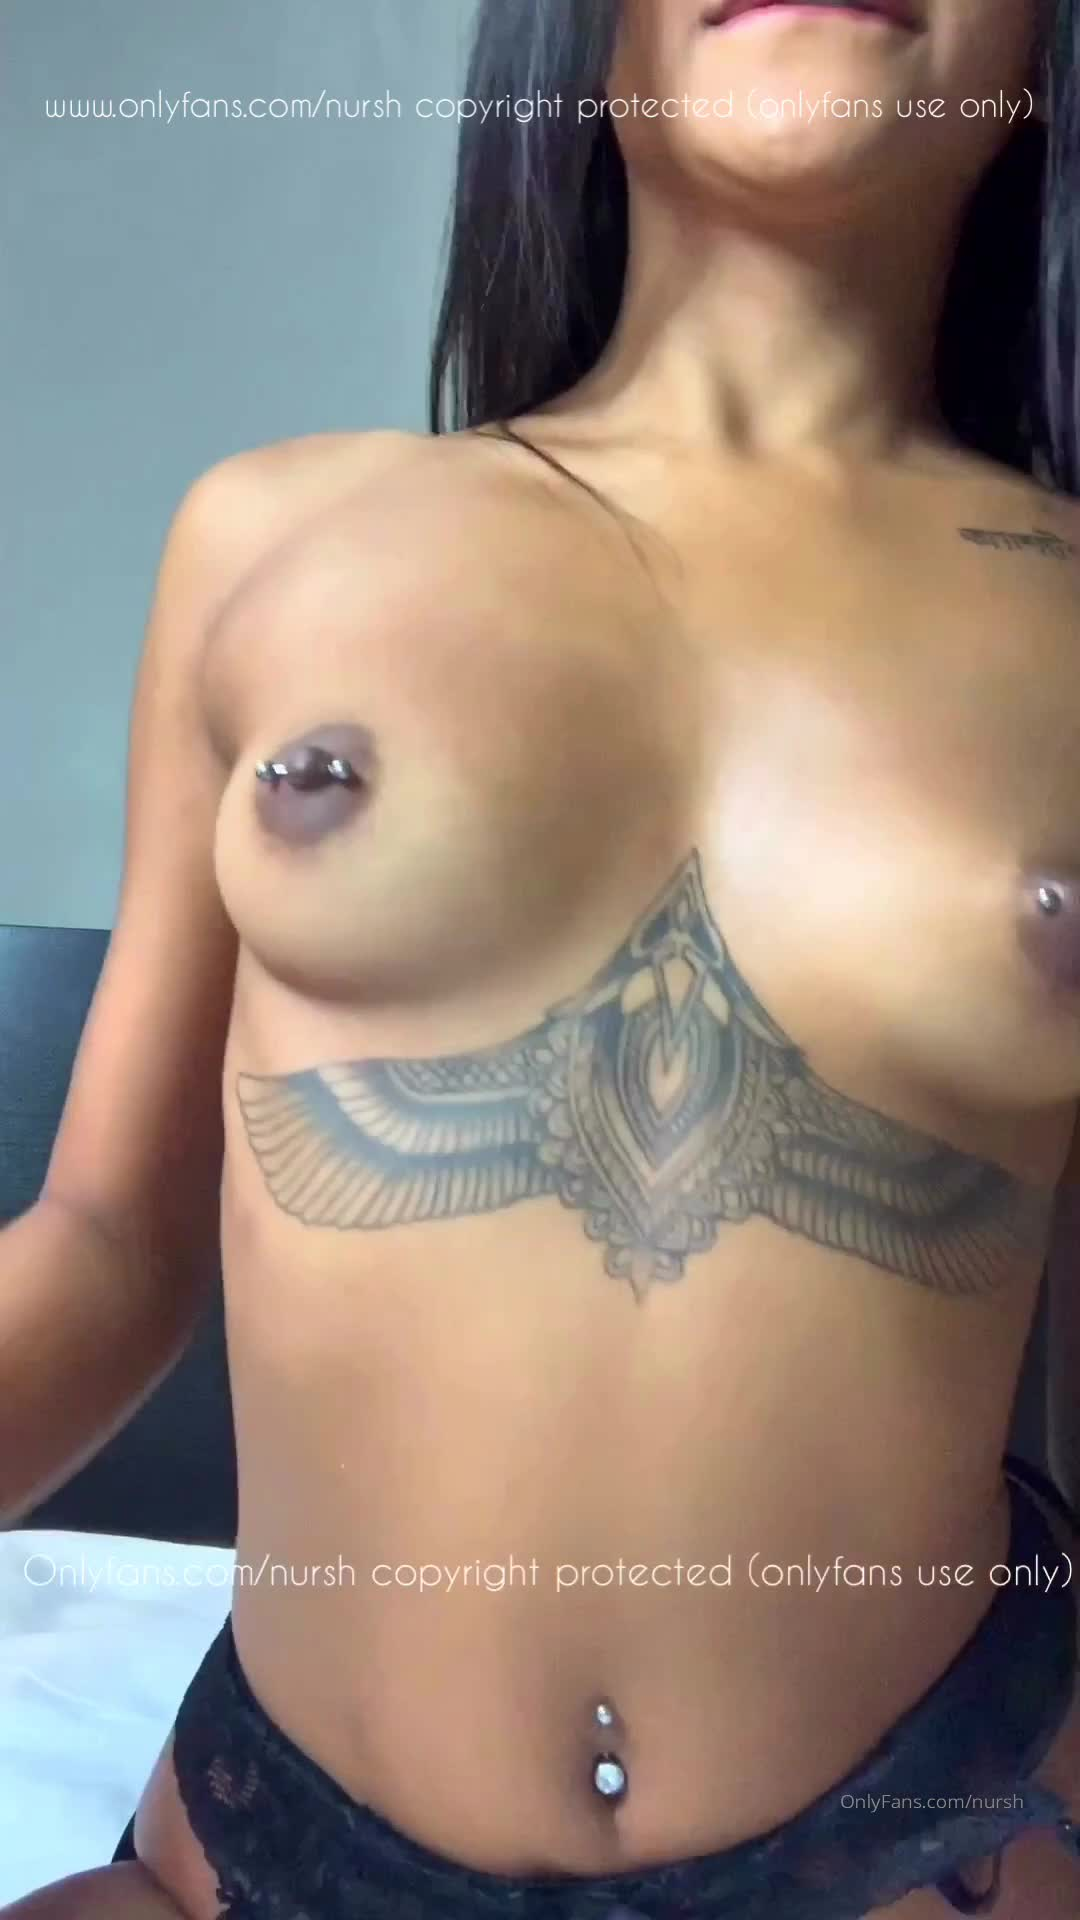 Sexy And Hot I Love her Check comment for More👇👇